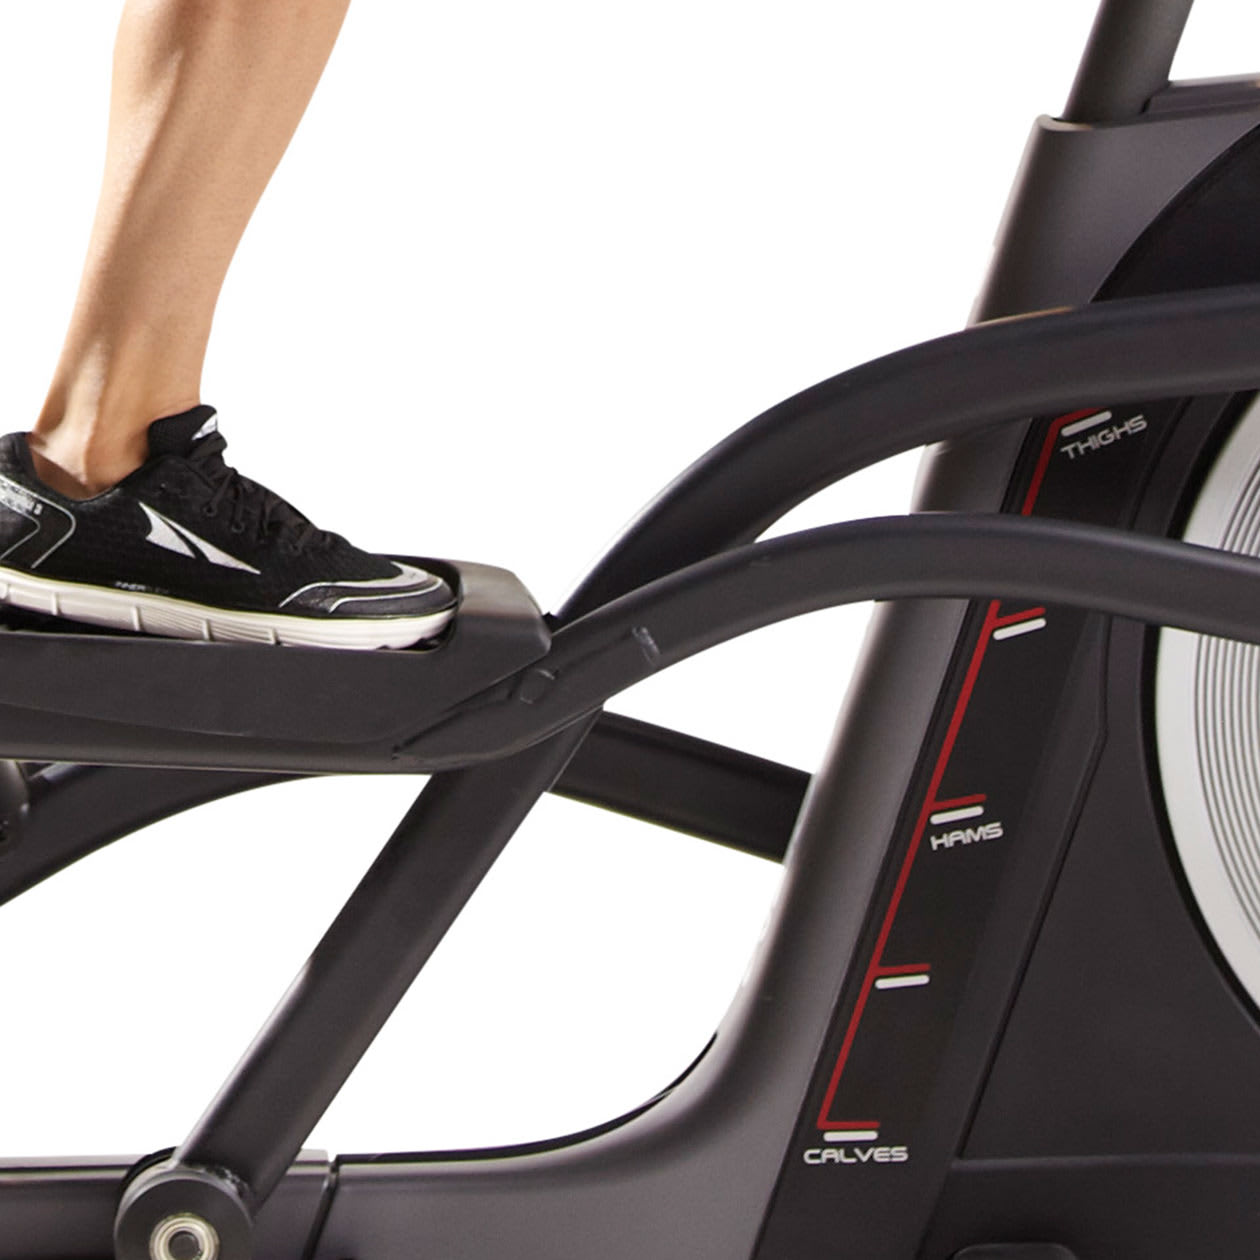 Proform Ellipticals SMART Pro 16.9  gallery image 7